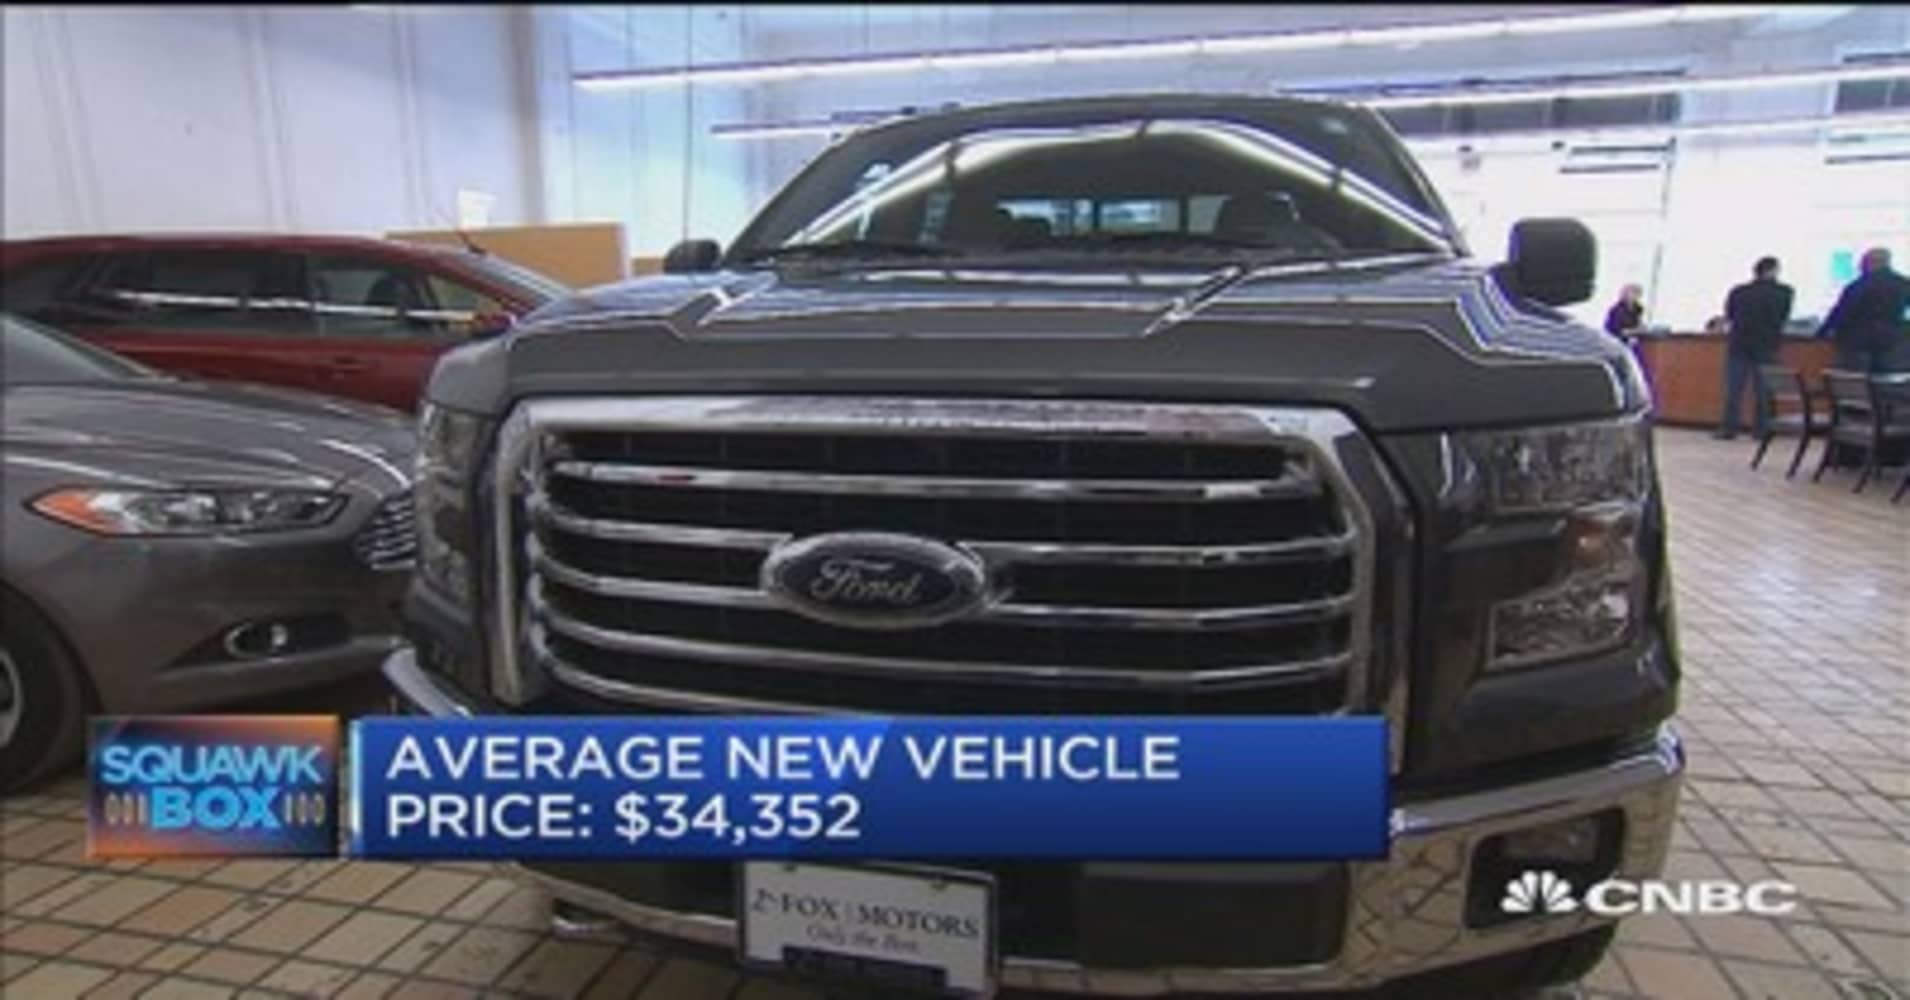 Executive edge price gap widens between new and used cars